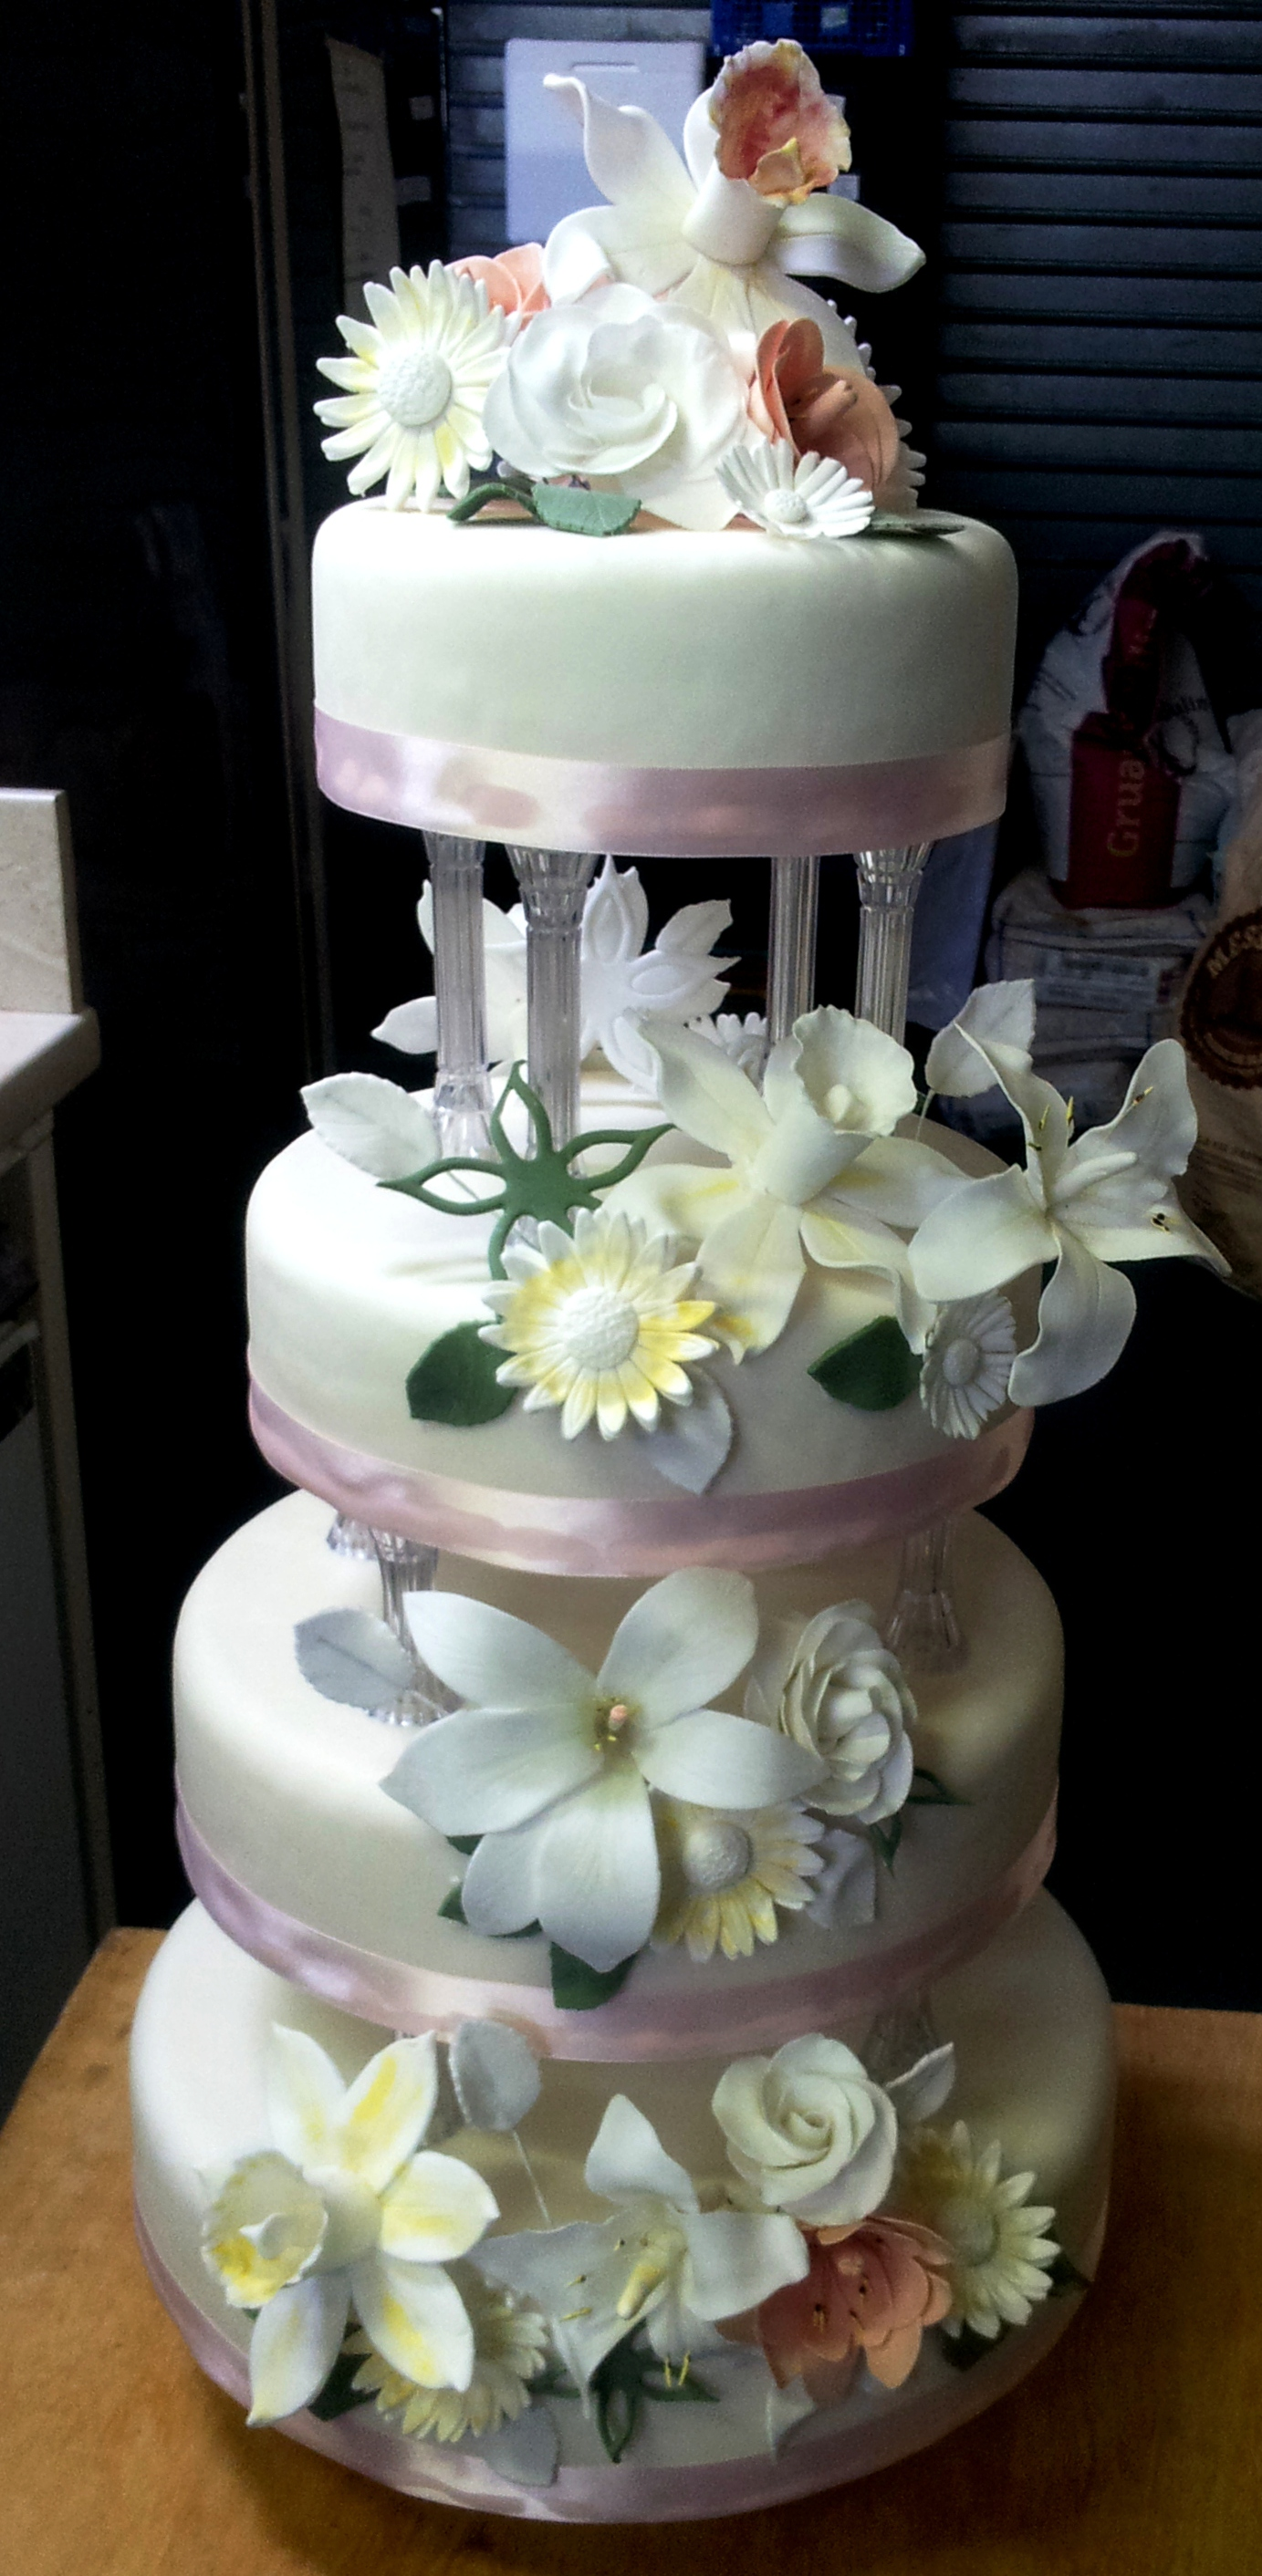 25 Best Cake Designs Ever Page 3 of 31